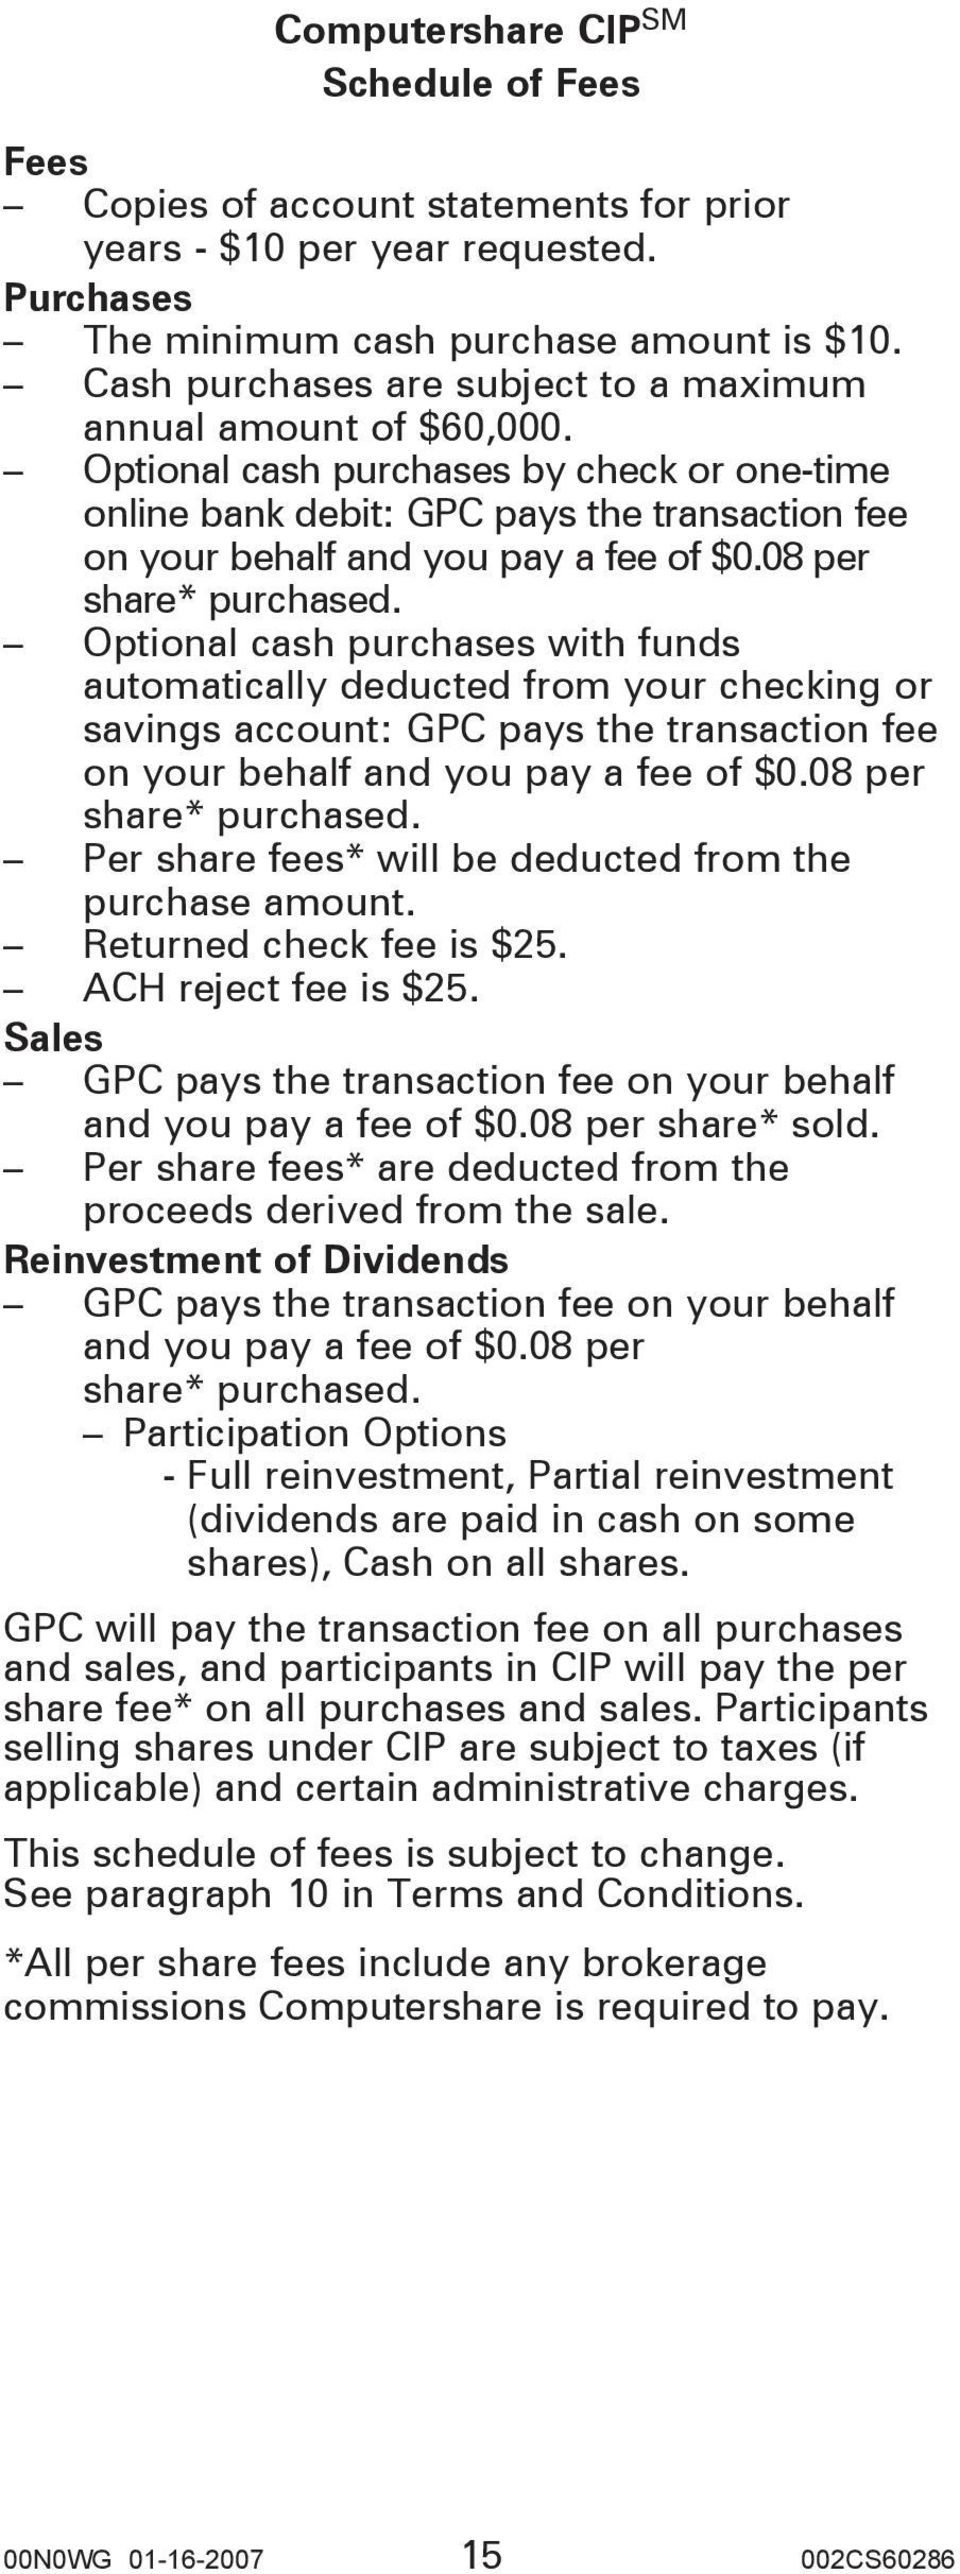 08 per share* purchased. Optional cash purchases with funds automatically deducted from your checking or savings account: GPC pays the transaction fee on your behalf and you pay a fee of $0.